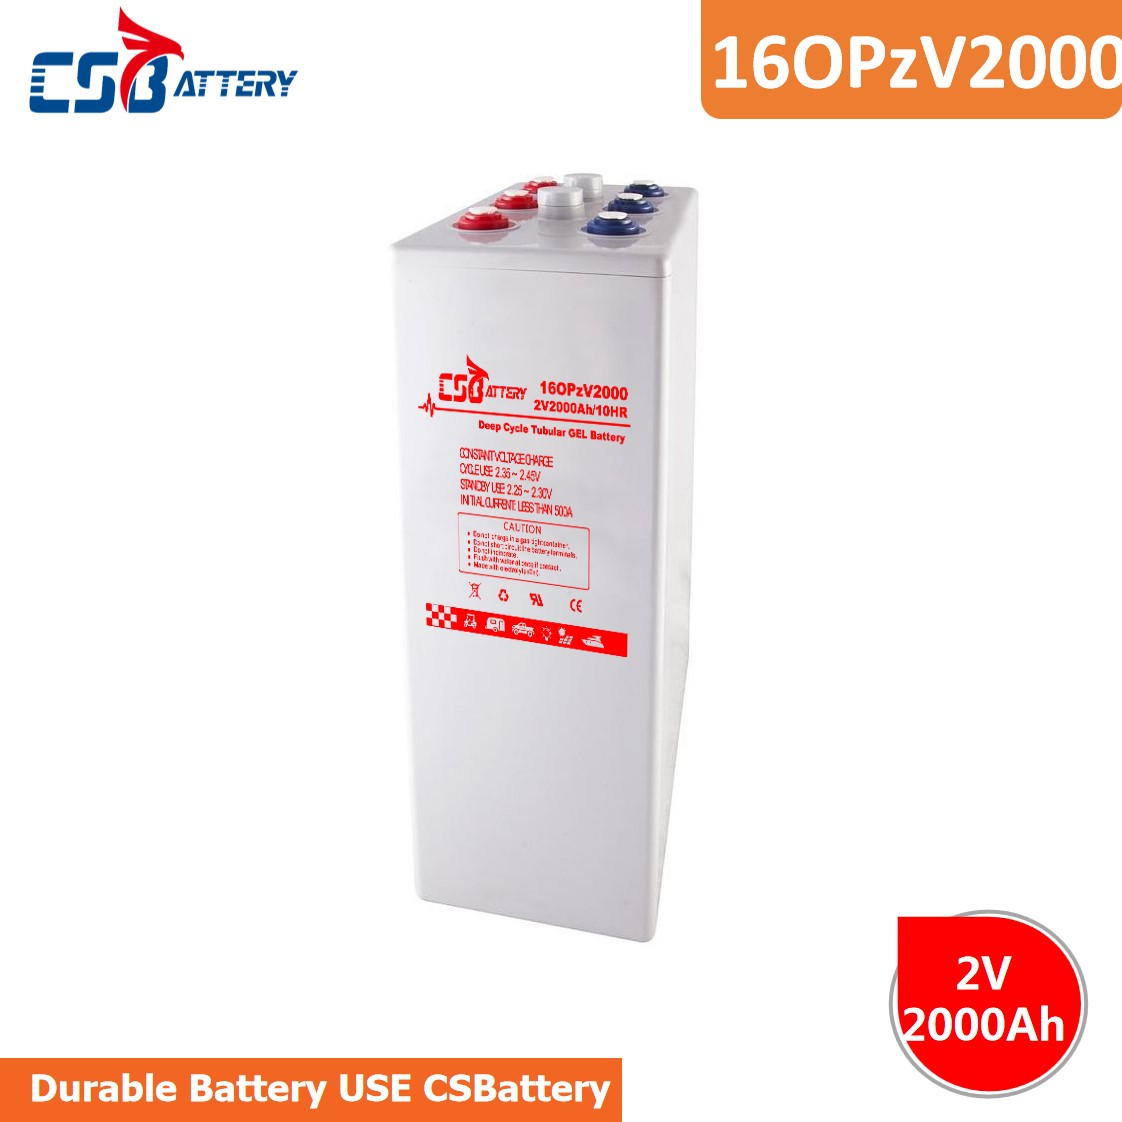 Csbattery 2V2000ah Tubular Gel Battery for Wind-Turbine